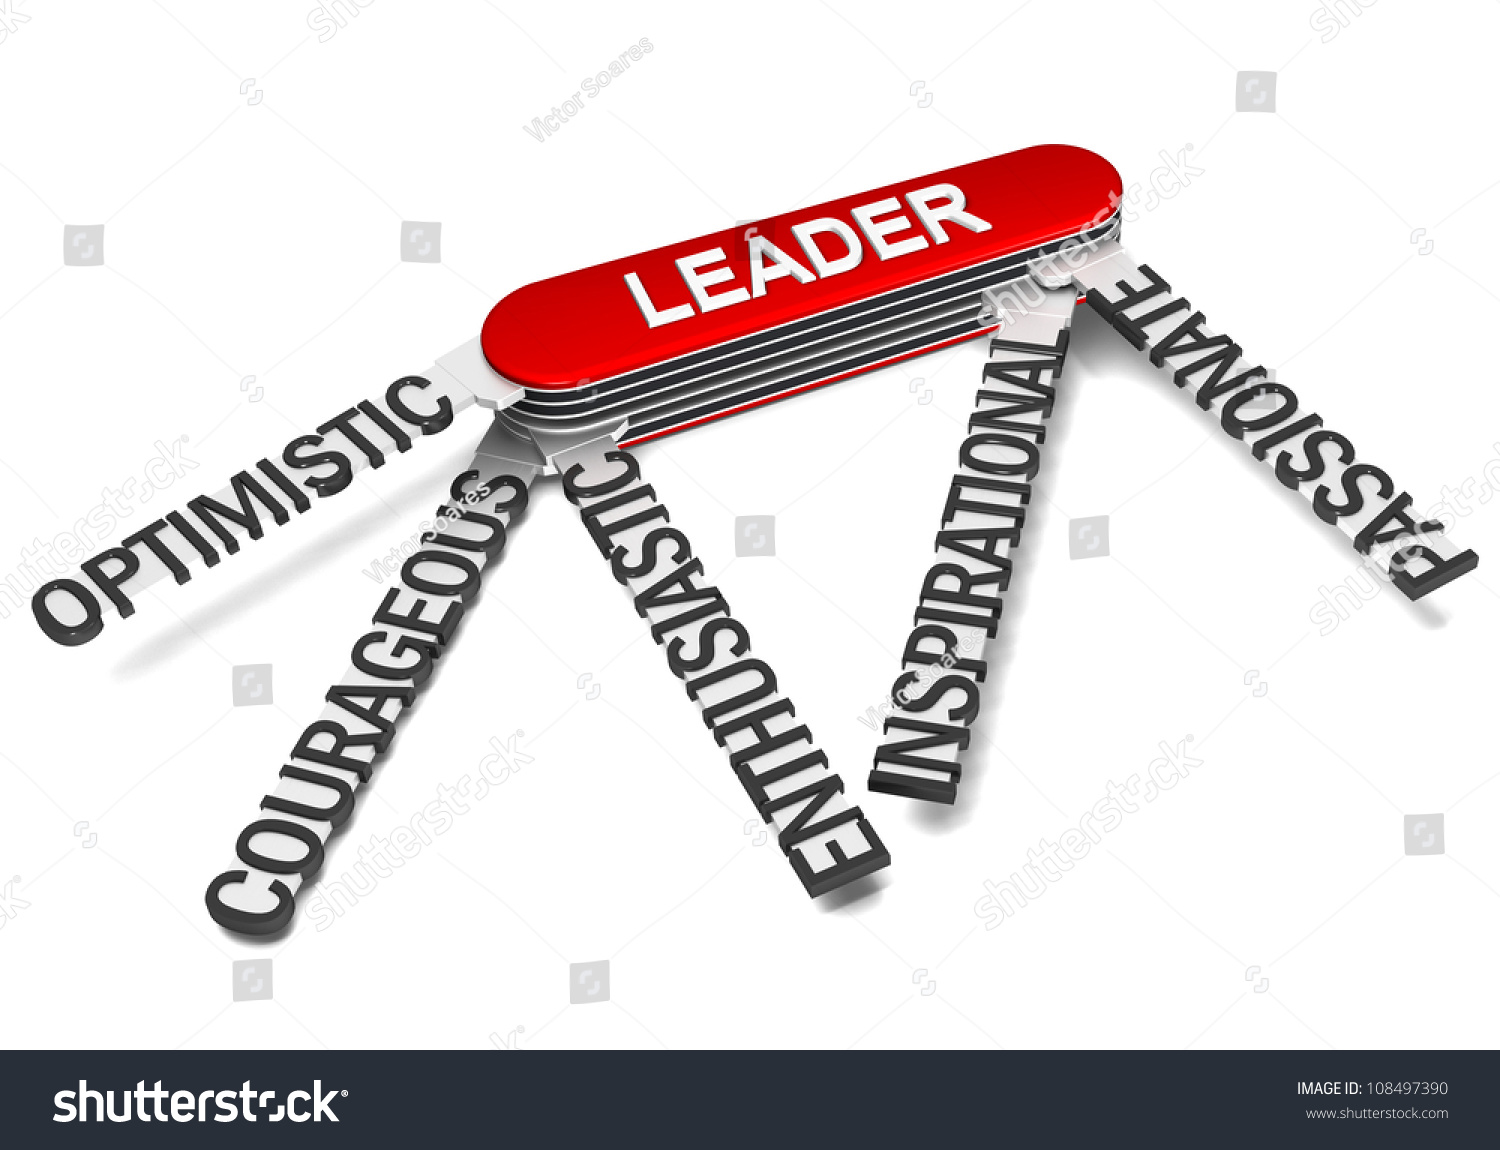 important qualities of a leader essay Short essay on leadership a leader not only reacts positively but also helps other members of the group to see the brighter side of the picture.